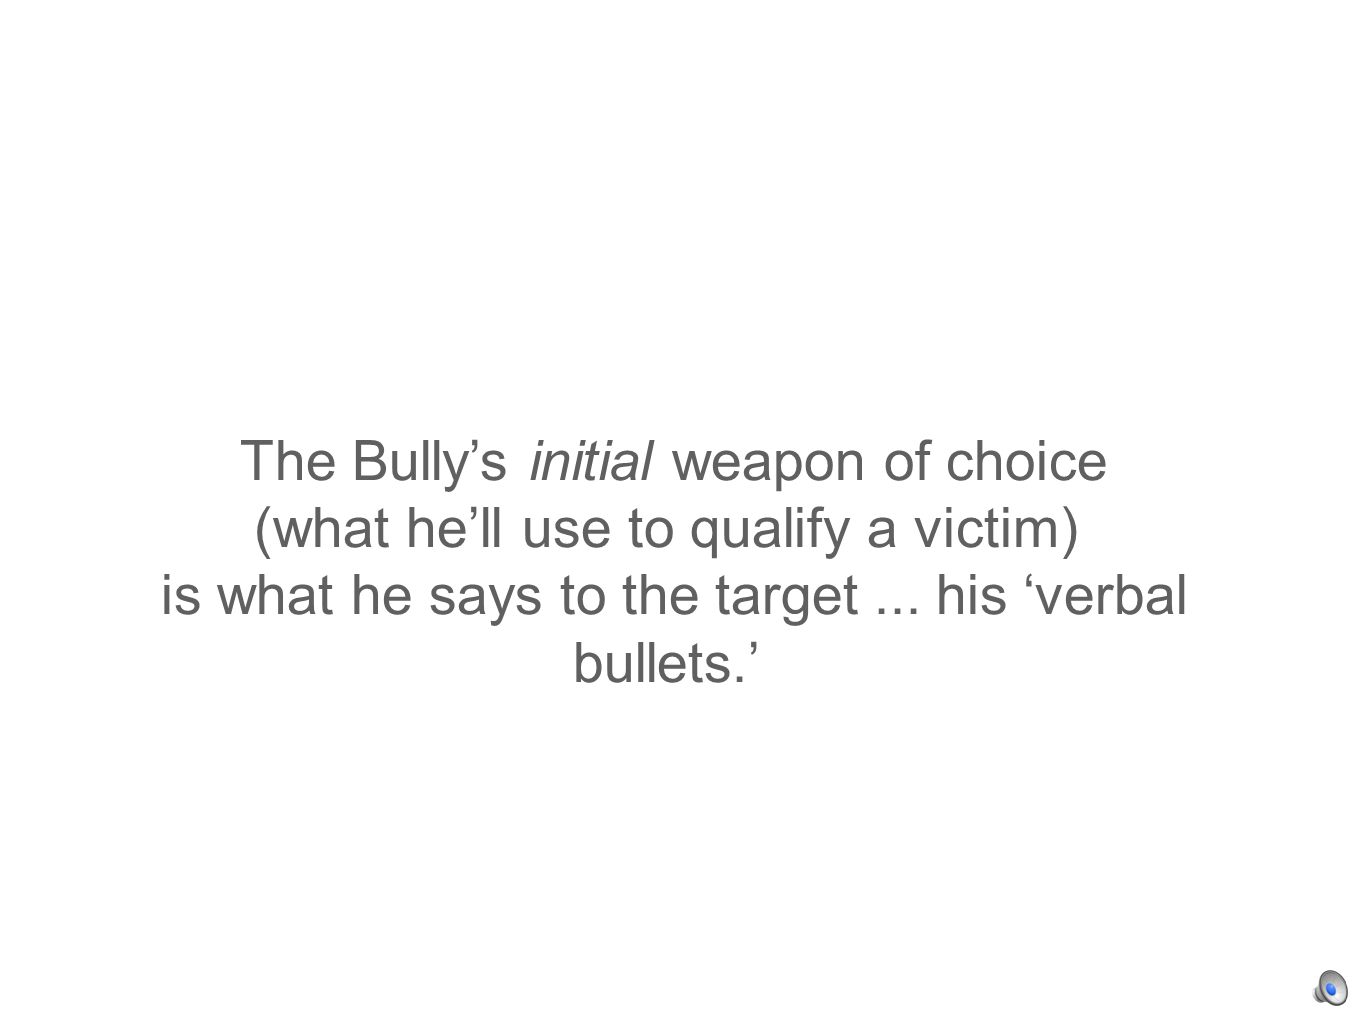 The Bullys initial weapon of choice (what hell use to qualify a victim) is what he says to the target...